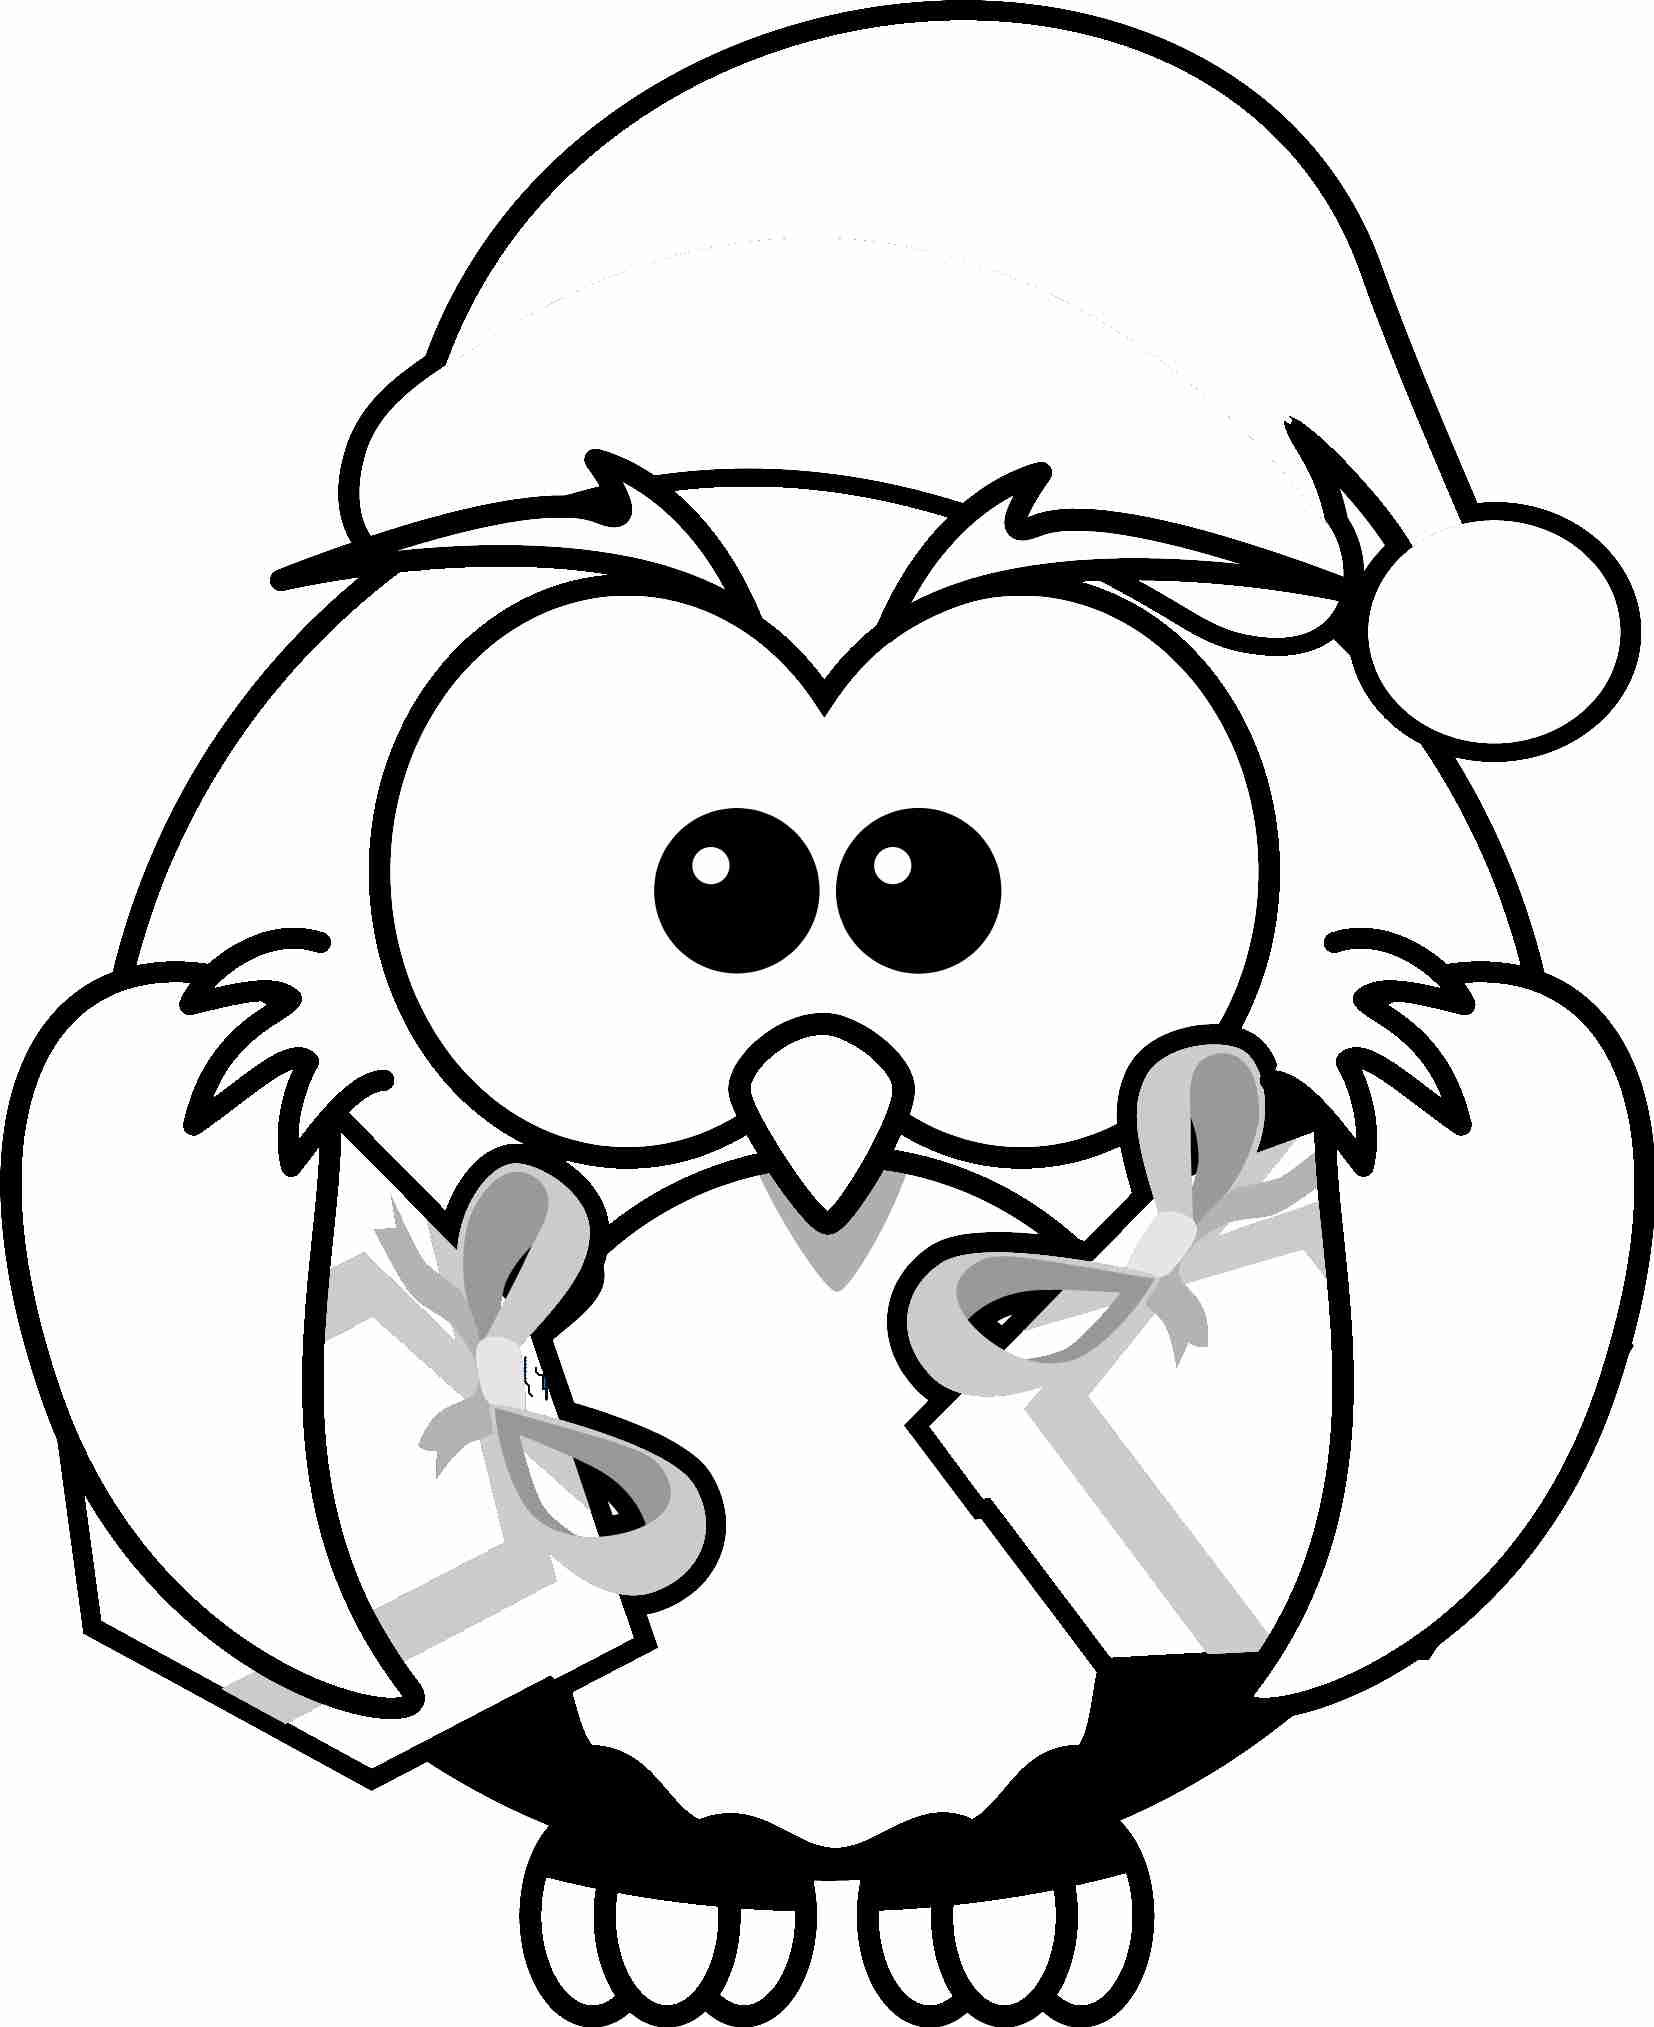 Christmas Coloring Pages Snowman With Color For Kids Unique Book Fresh